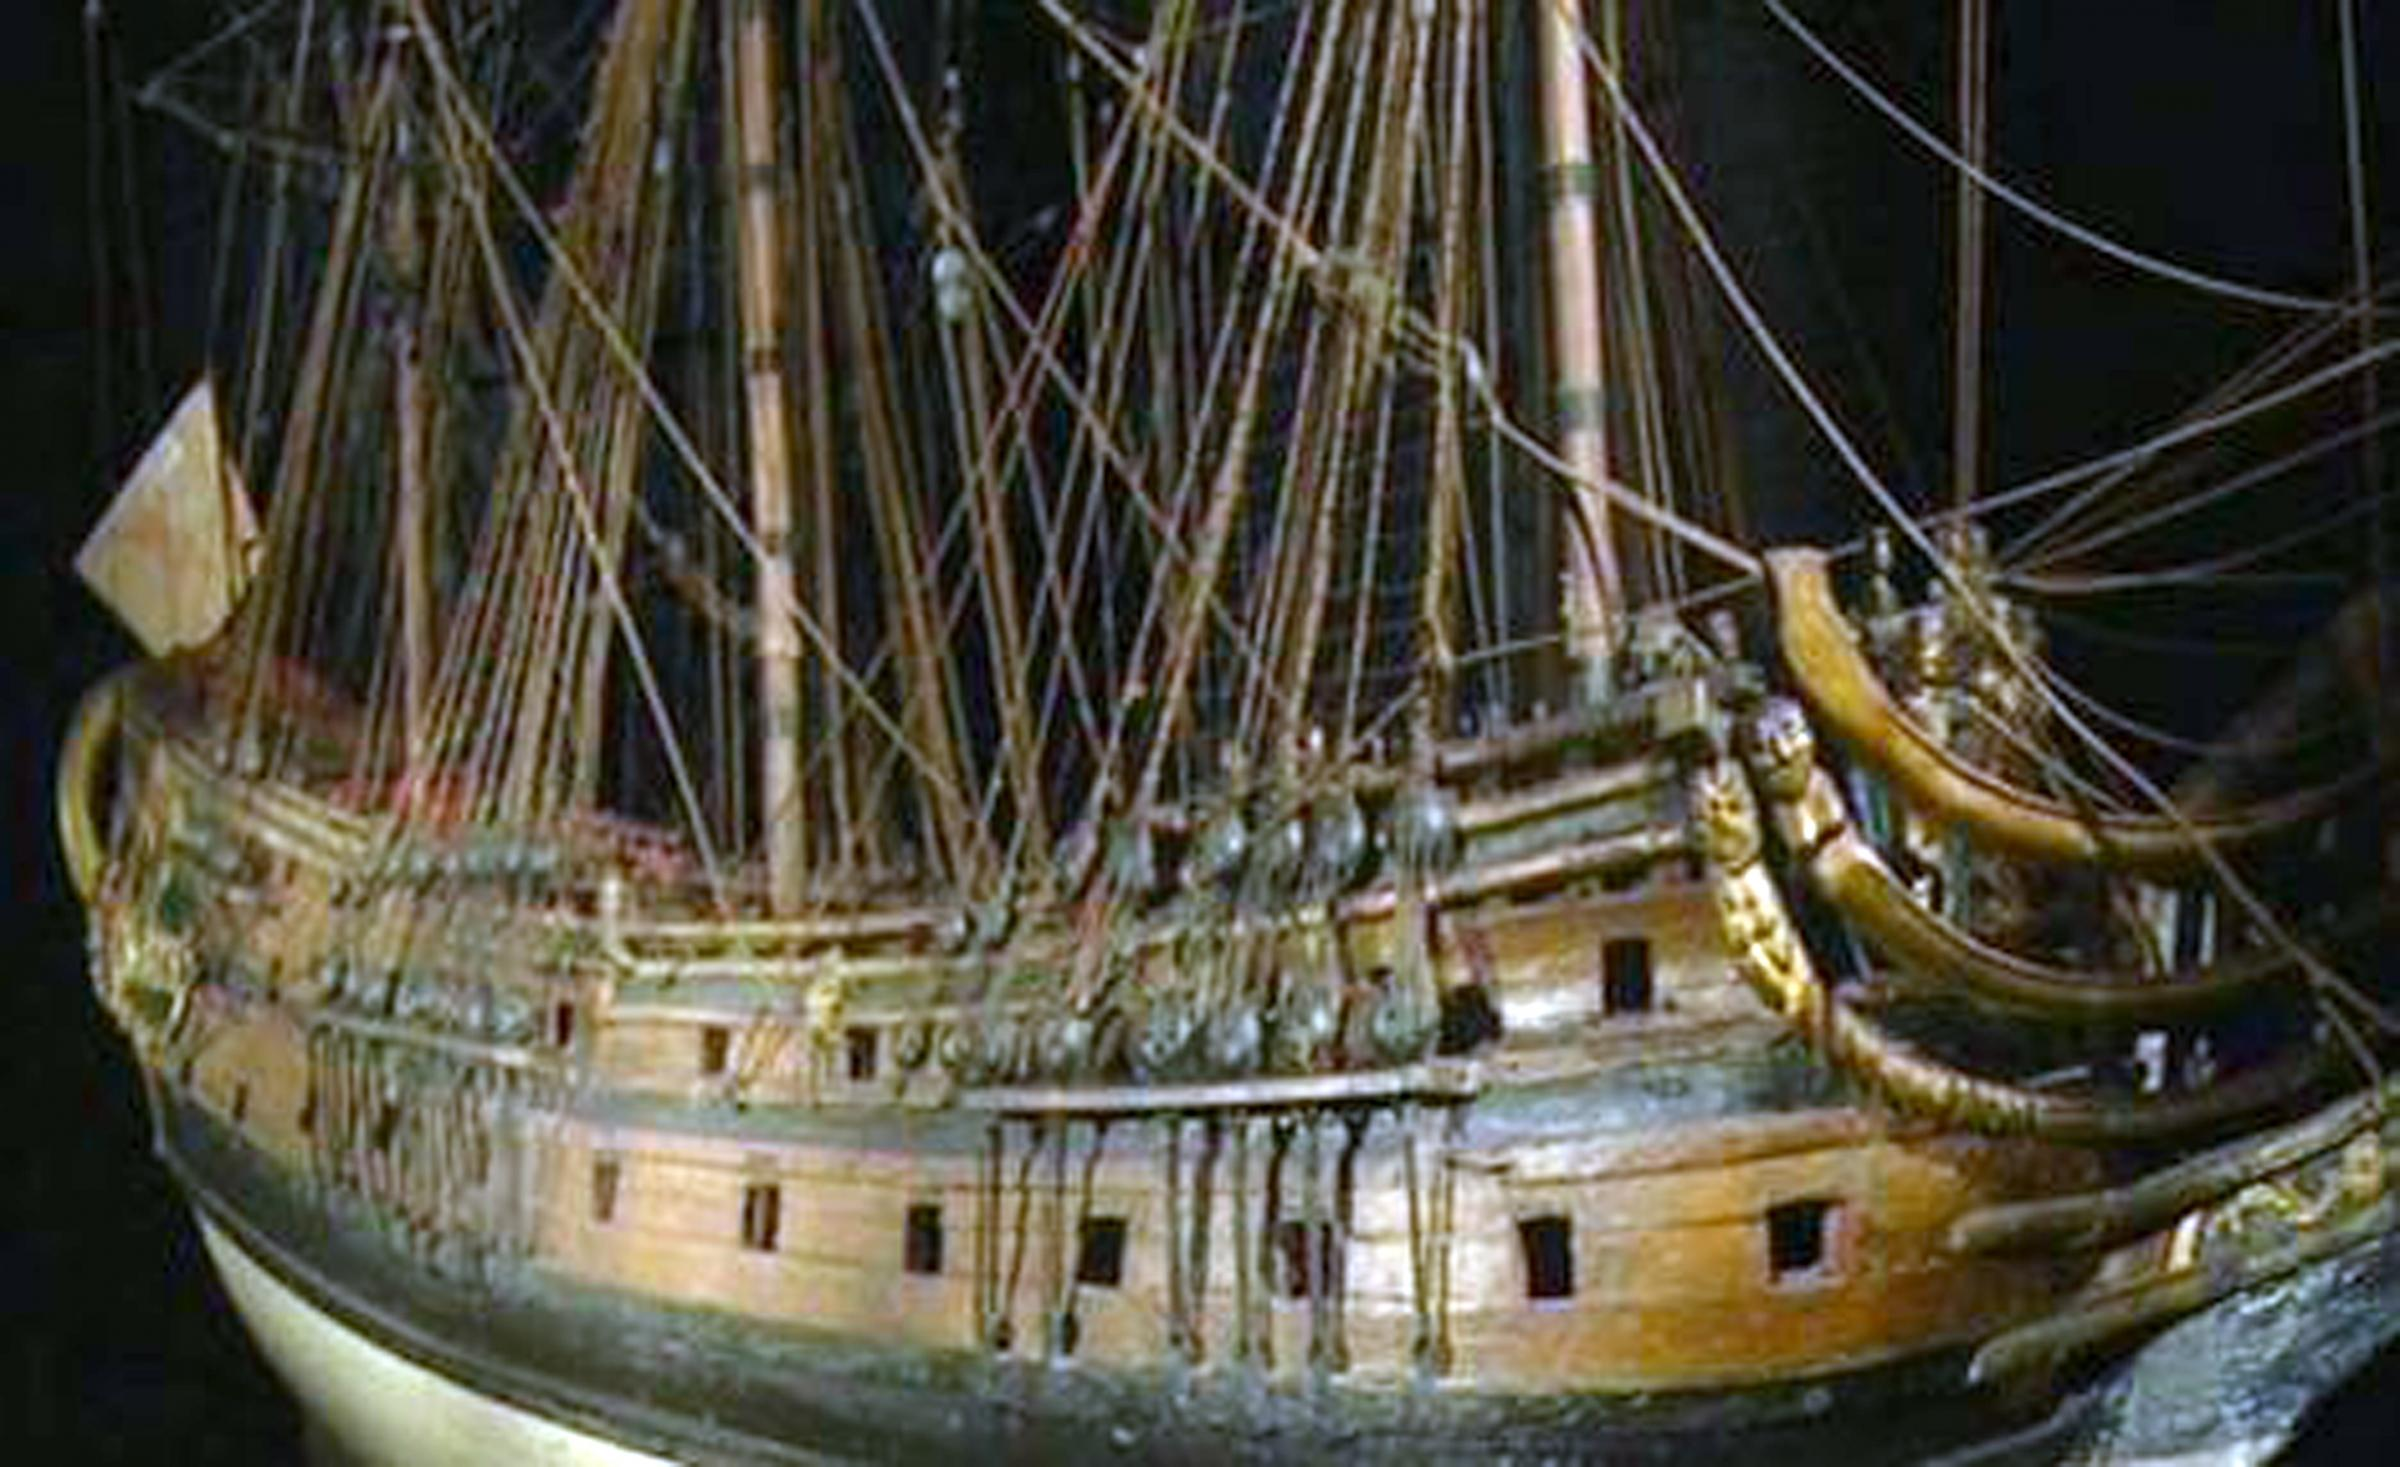 17th century Southend shipwreck to give up its secrets with new English Heritage excavation